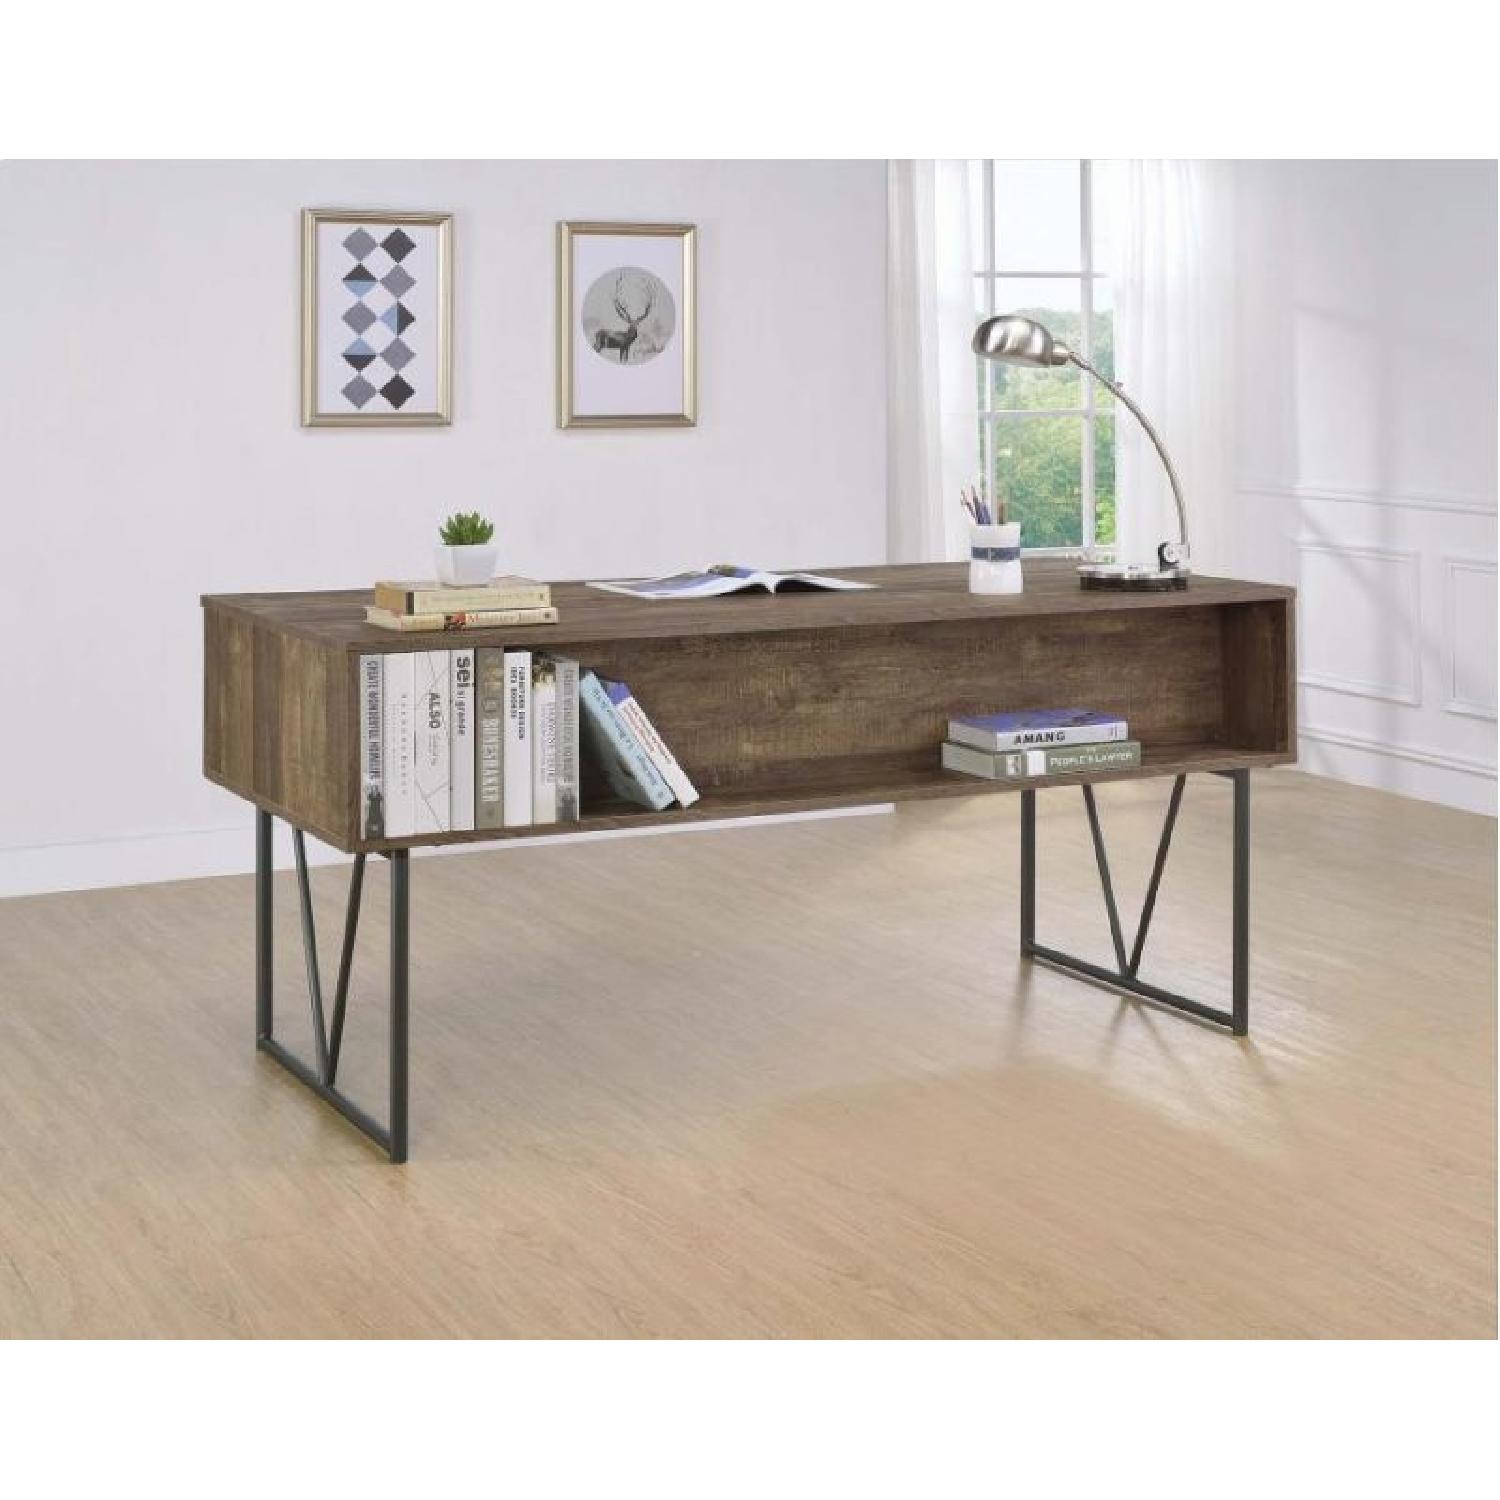 Rustic Oak Desk w/ Black Metal Frame Legs - image-6